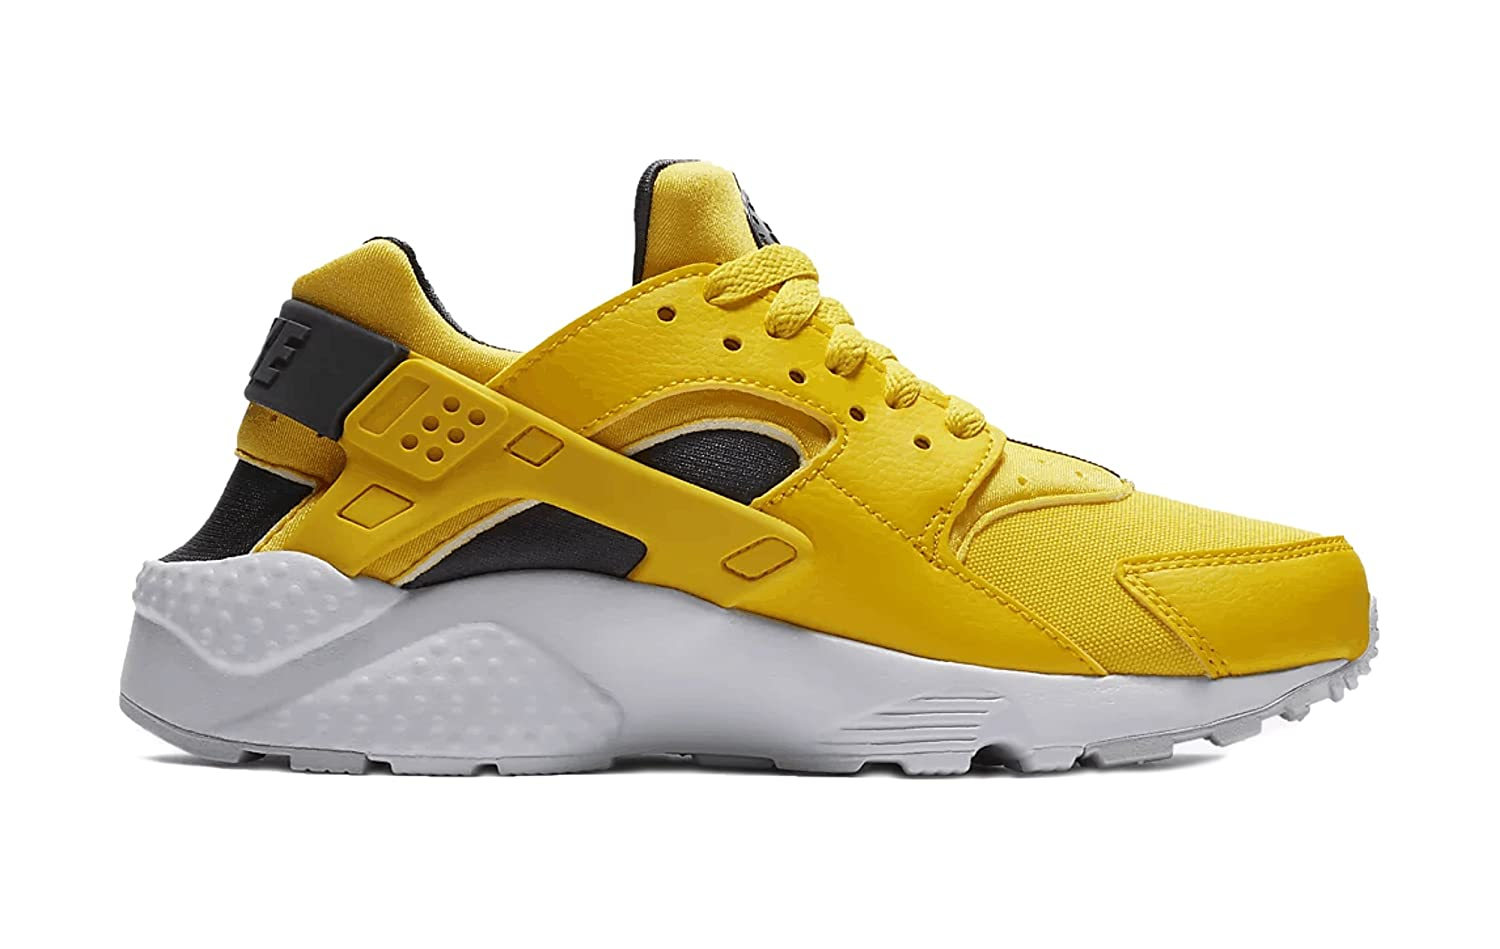 NIKE Air Huarache Run SE (GS)  sneakers B07C676TSQ 4 M US Big Kid|Yellow/White/Platinum